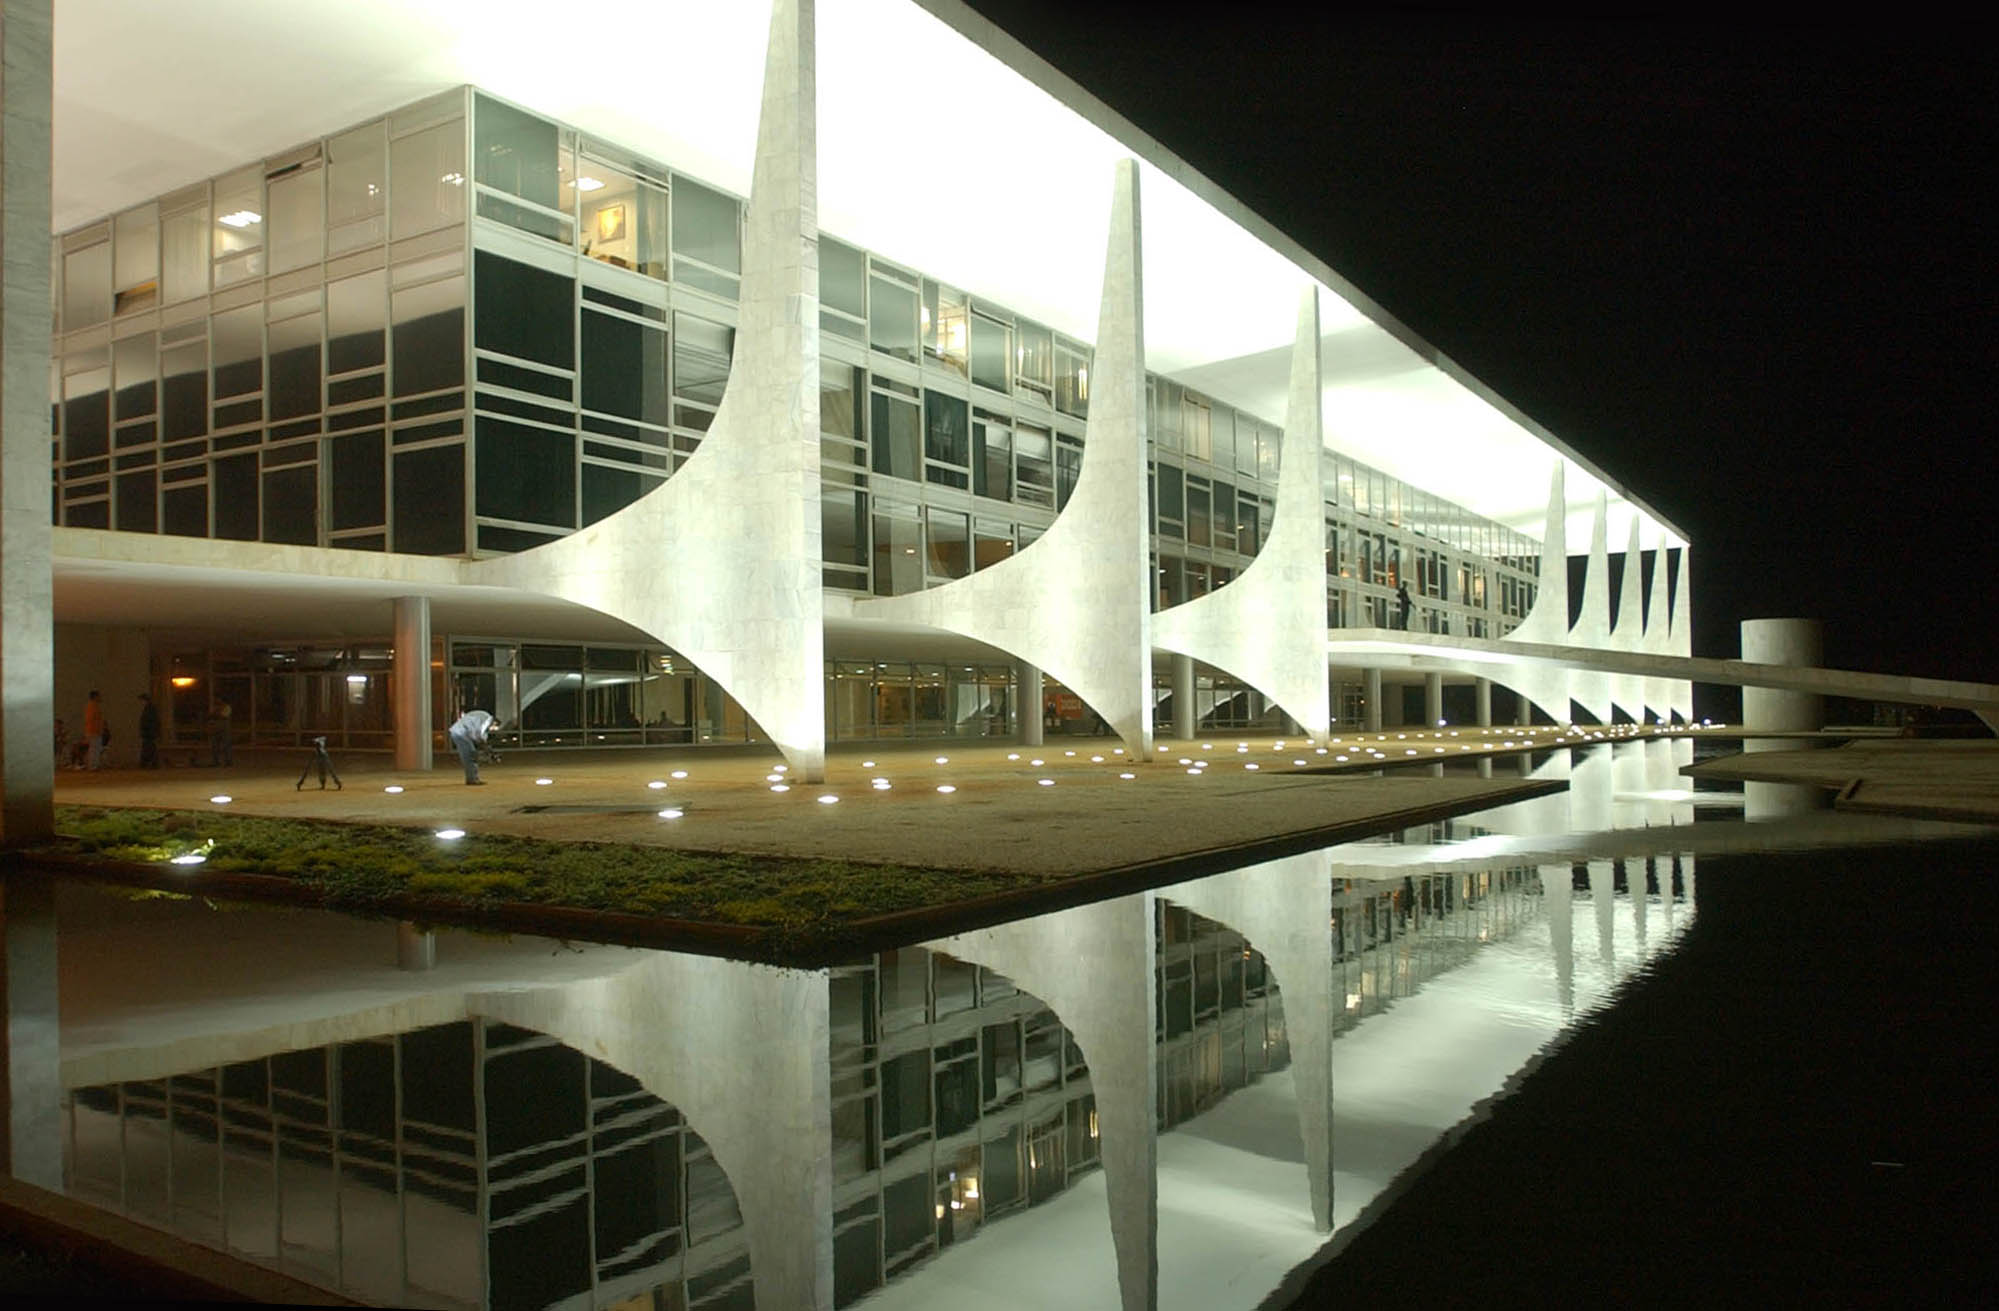 Palacio_do_Planalto